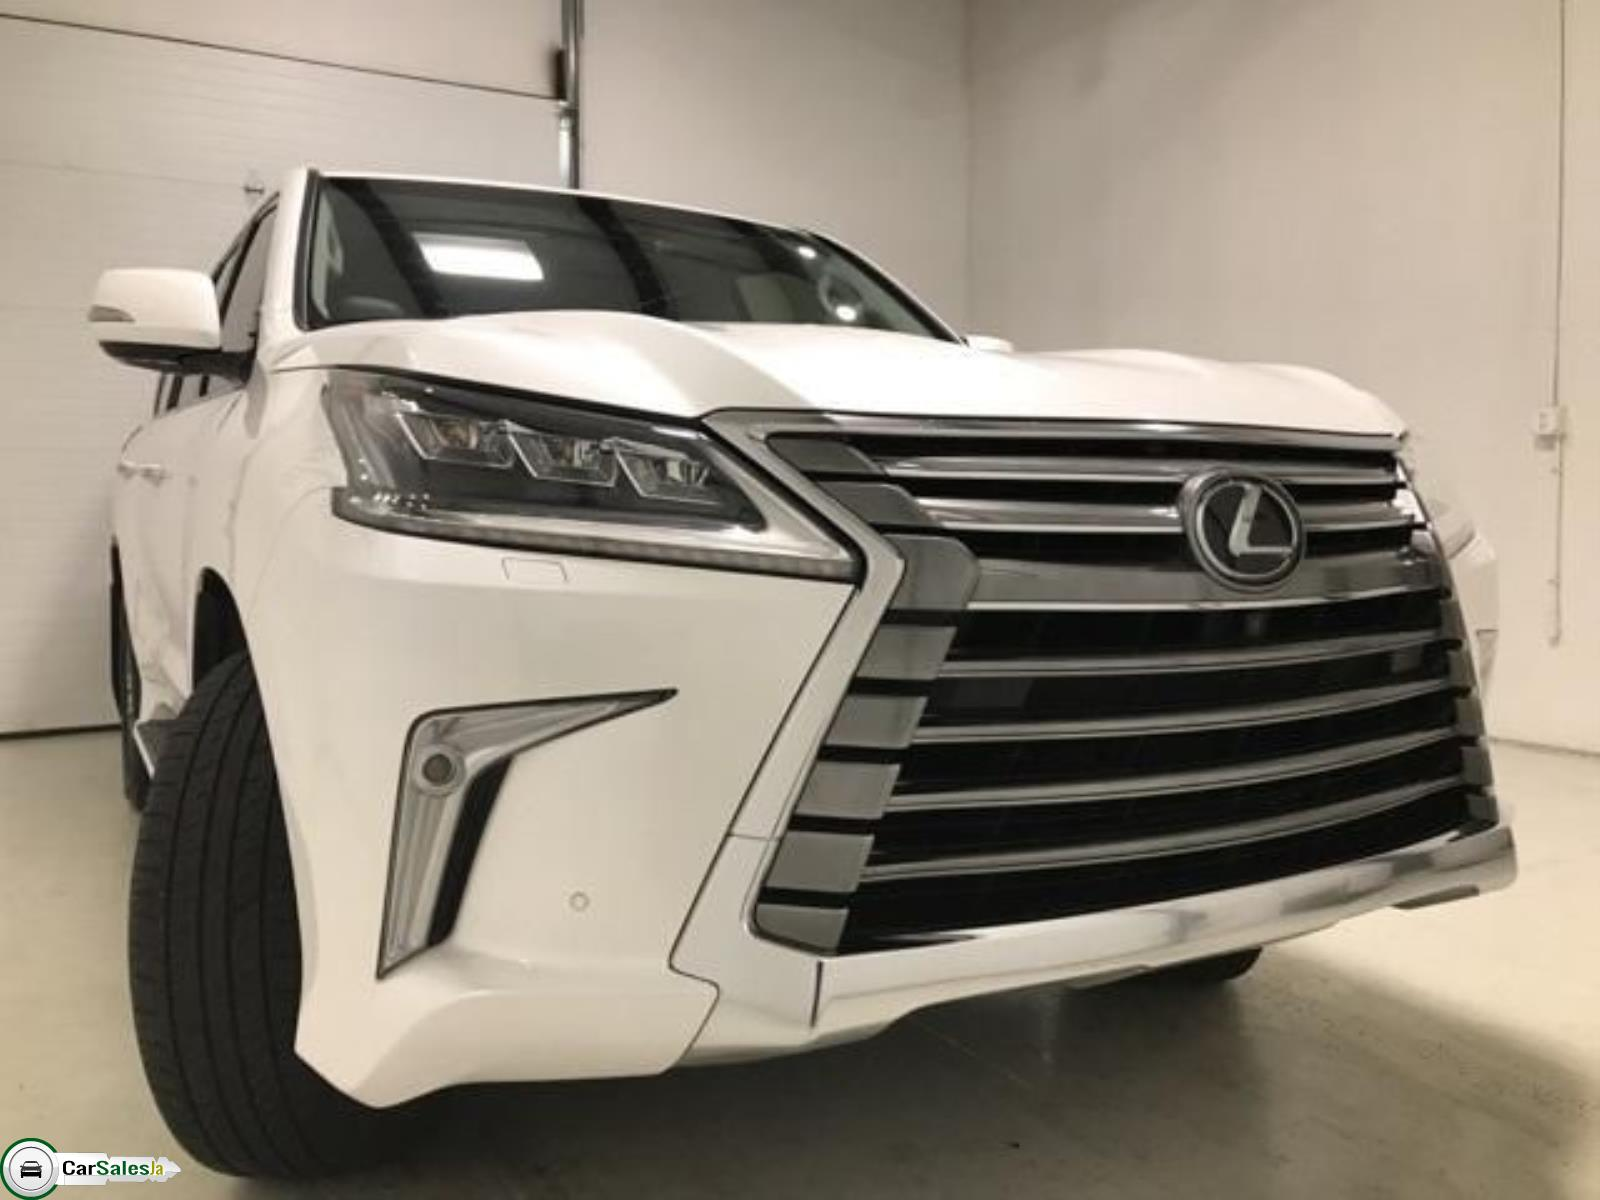 Cars for sale in Jamaica, Lexus LX Car for sale in Jamaica